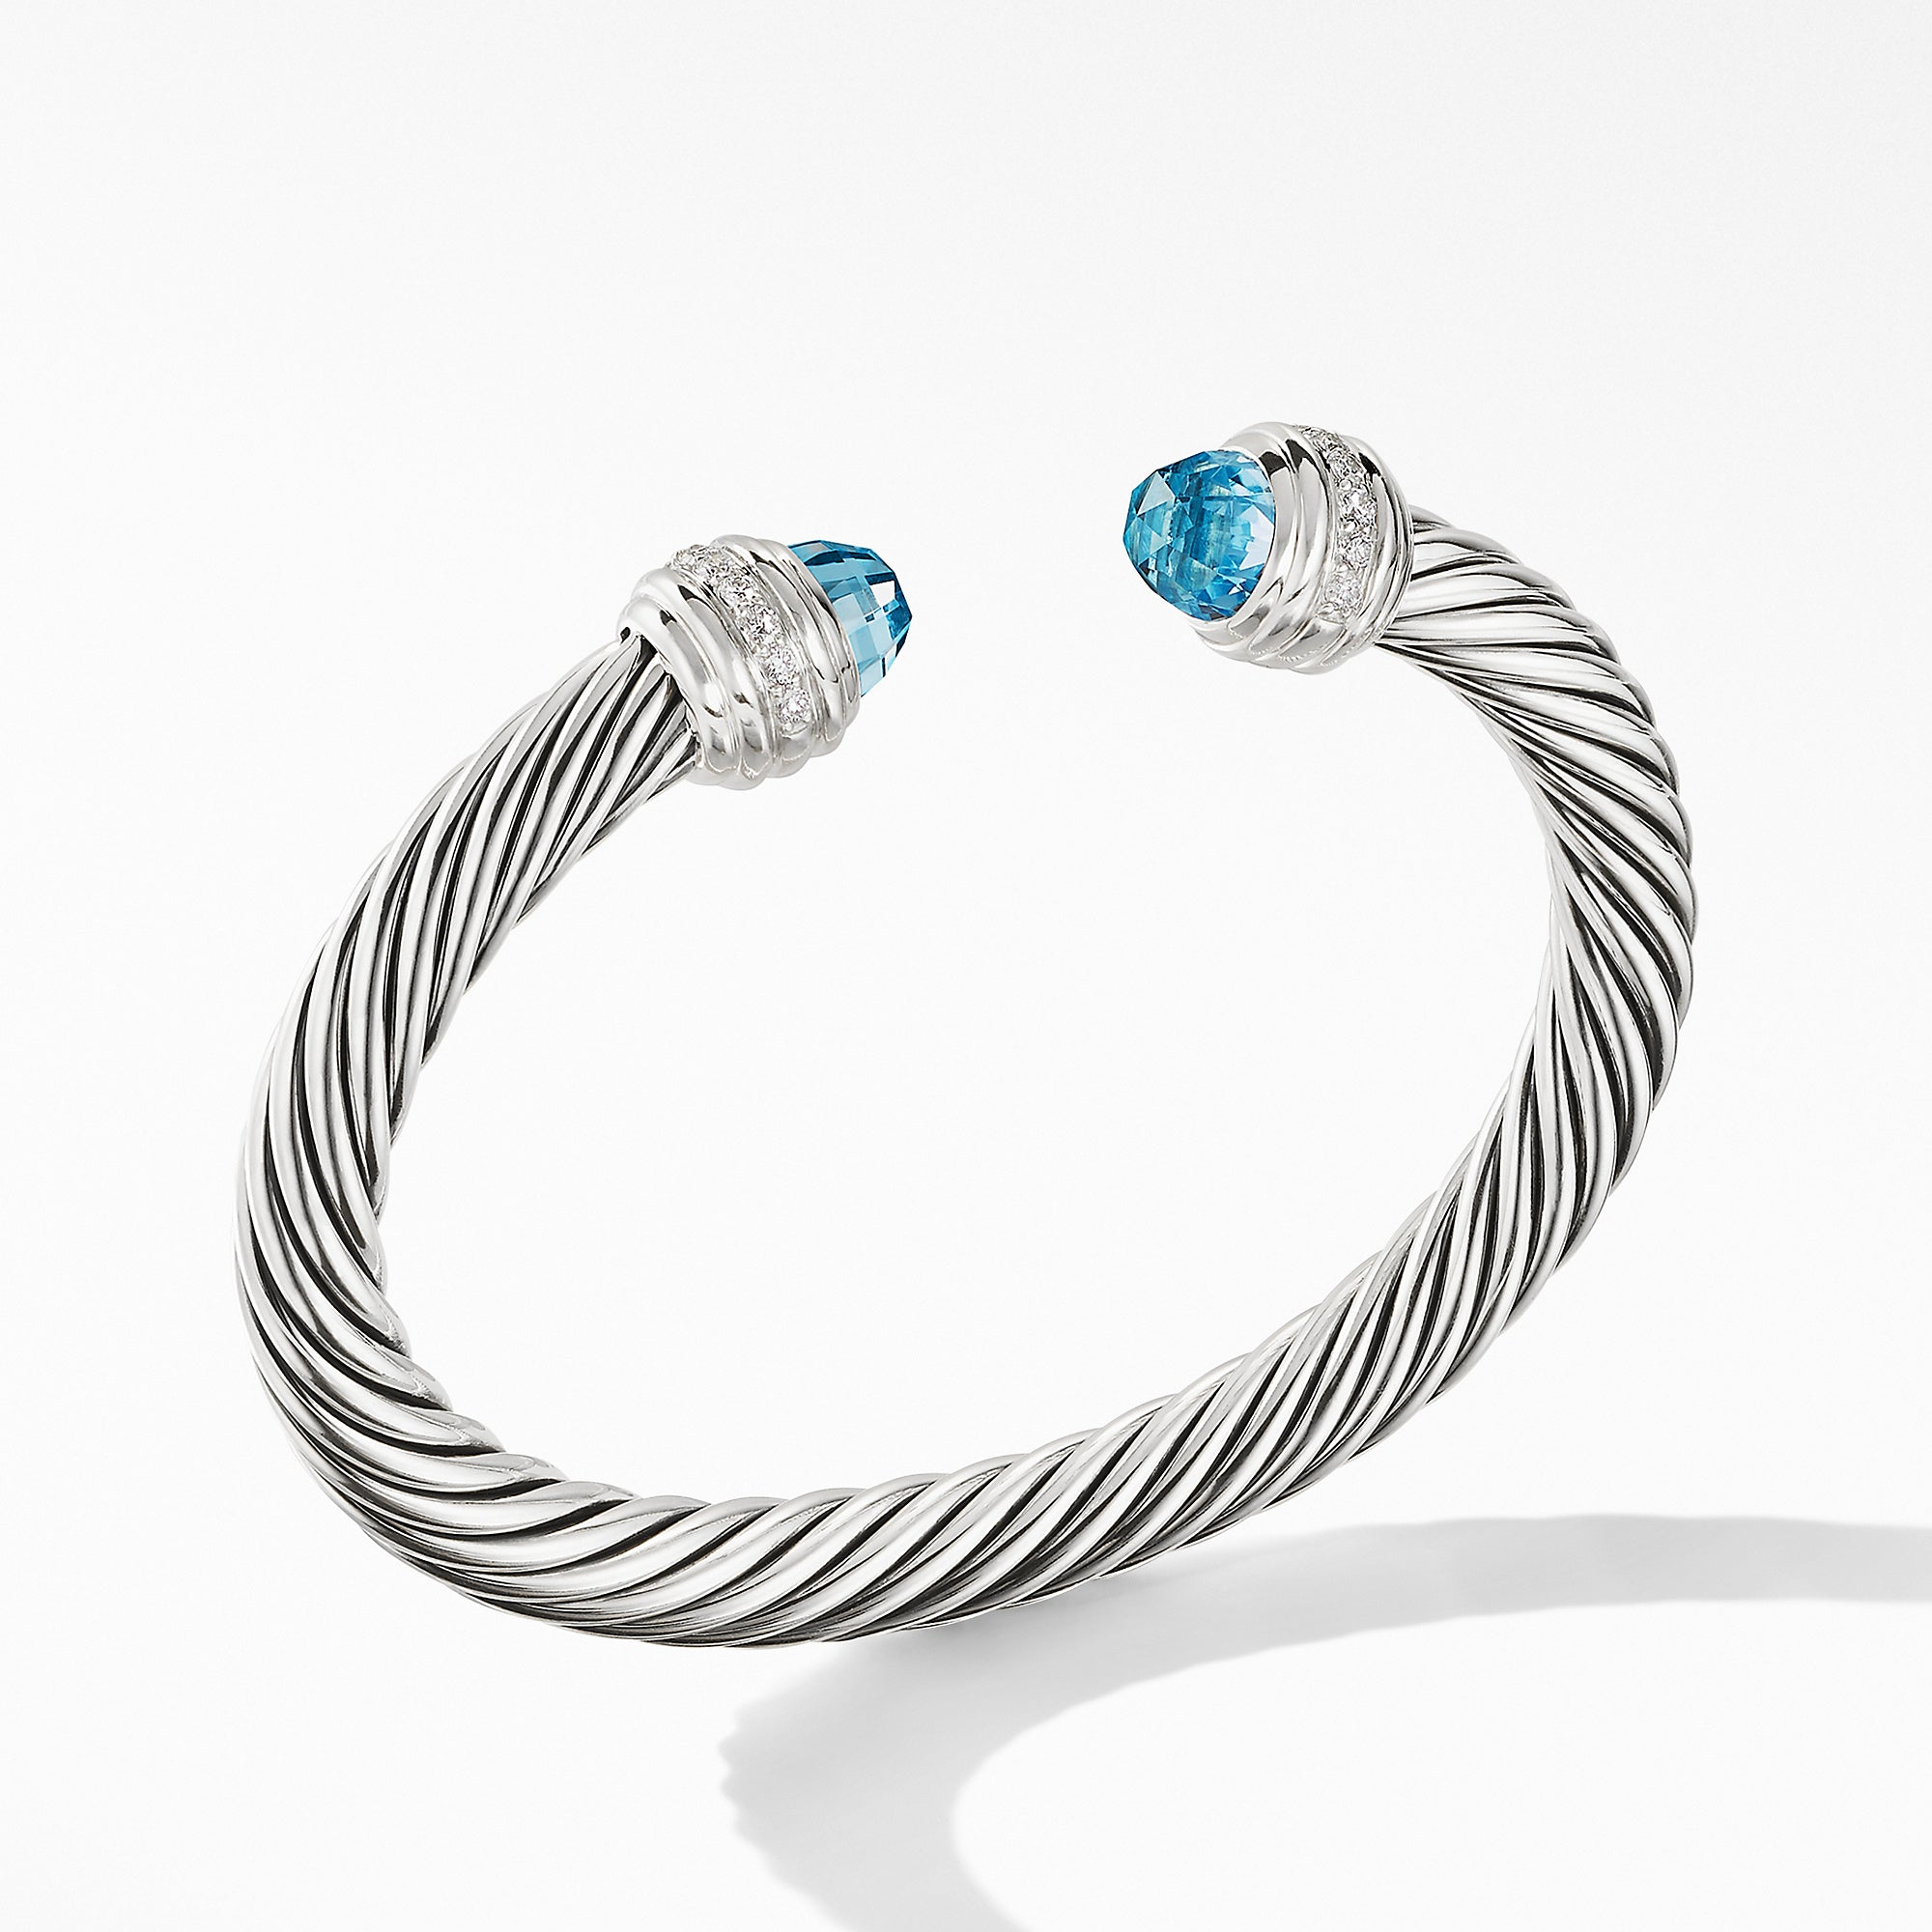 Cable Bracelet with Blue Topaz and Diamonds